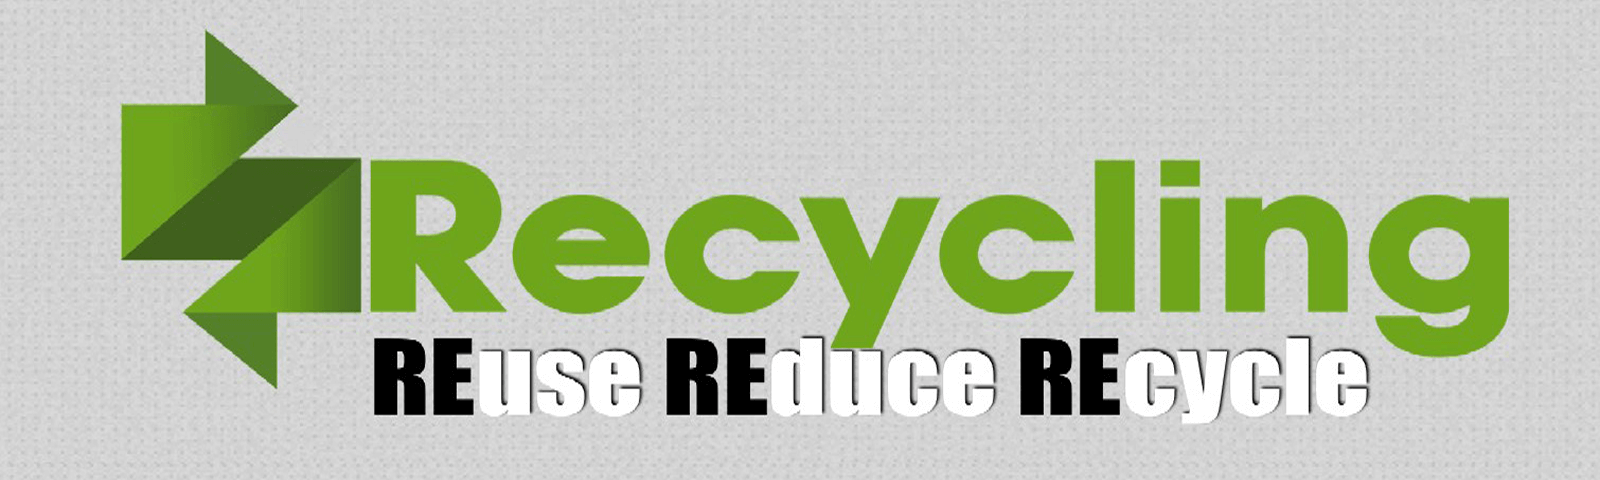 Solihull-recycling-waste-1